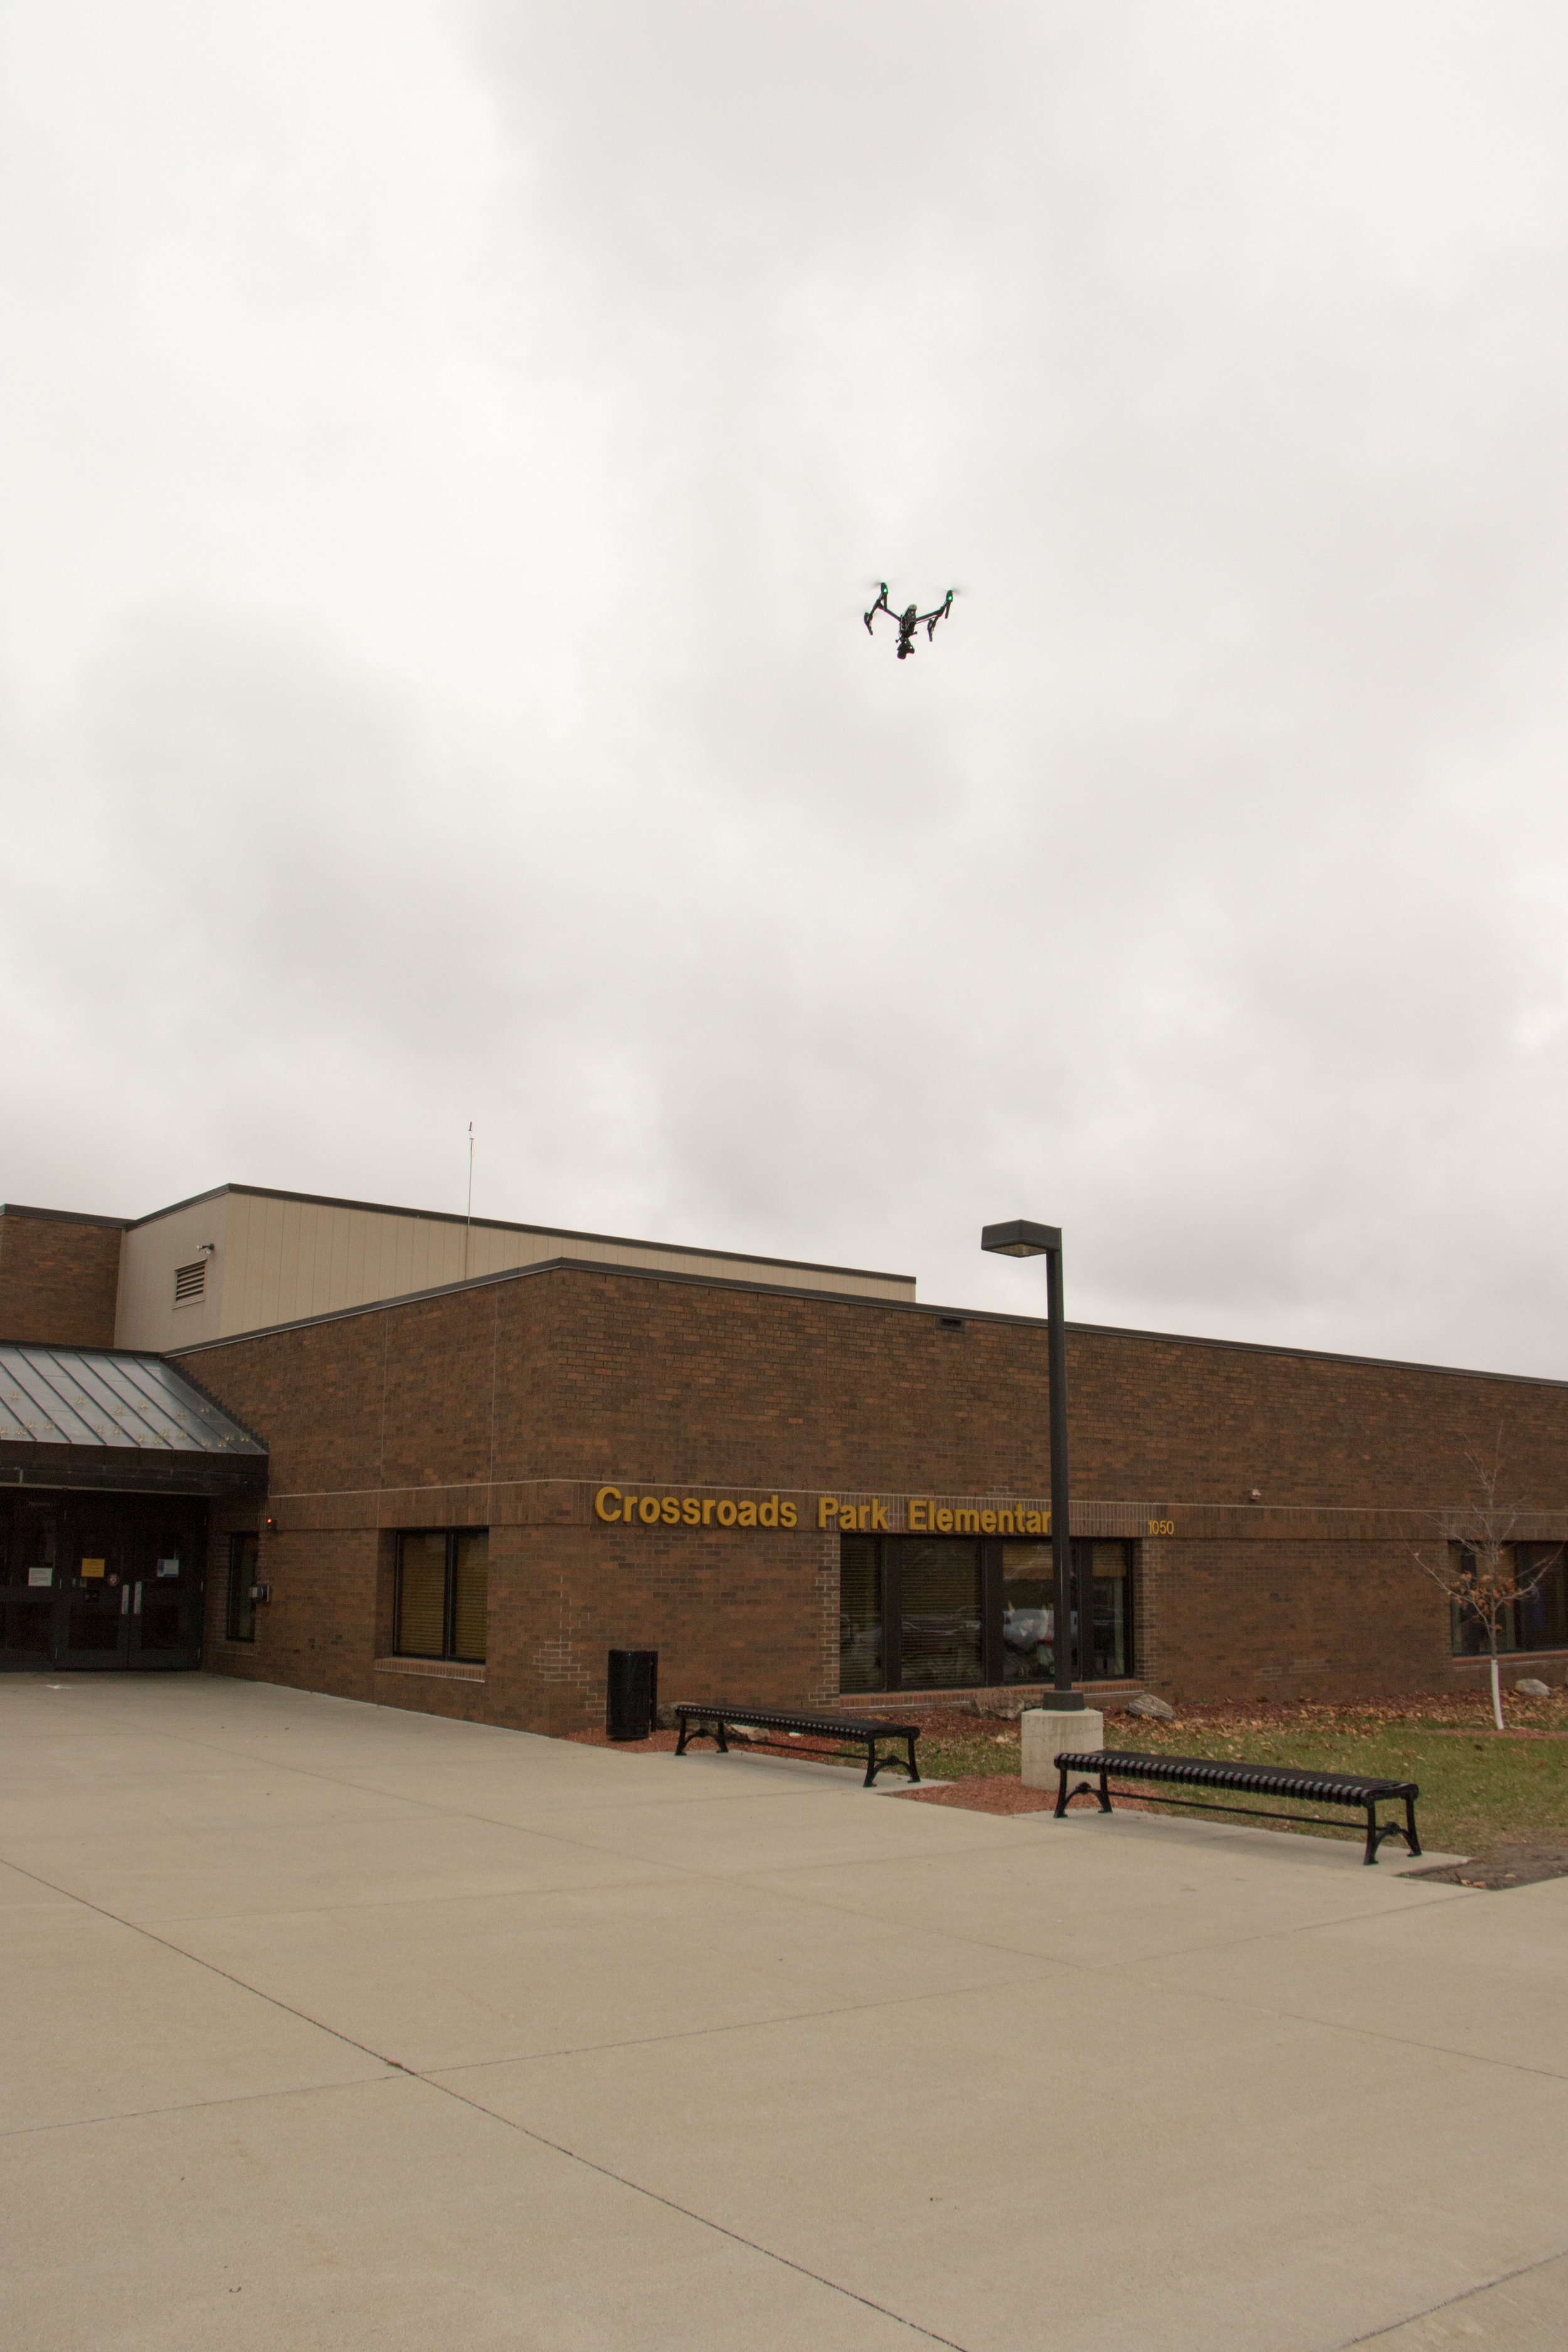 My photo from a drone inspection at a school